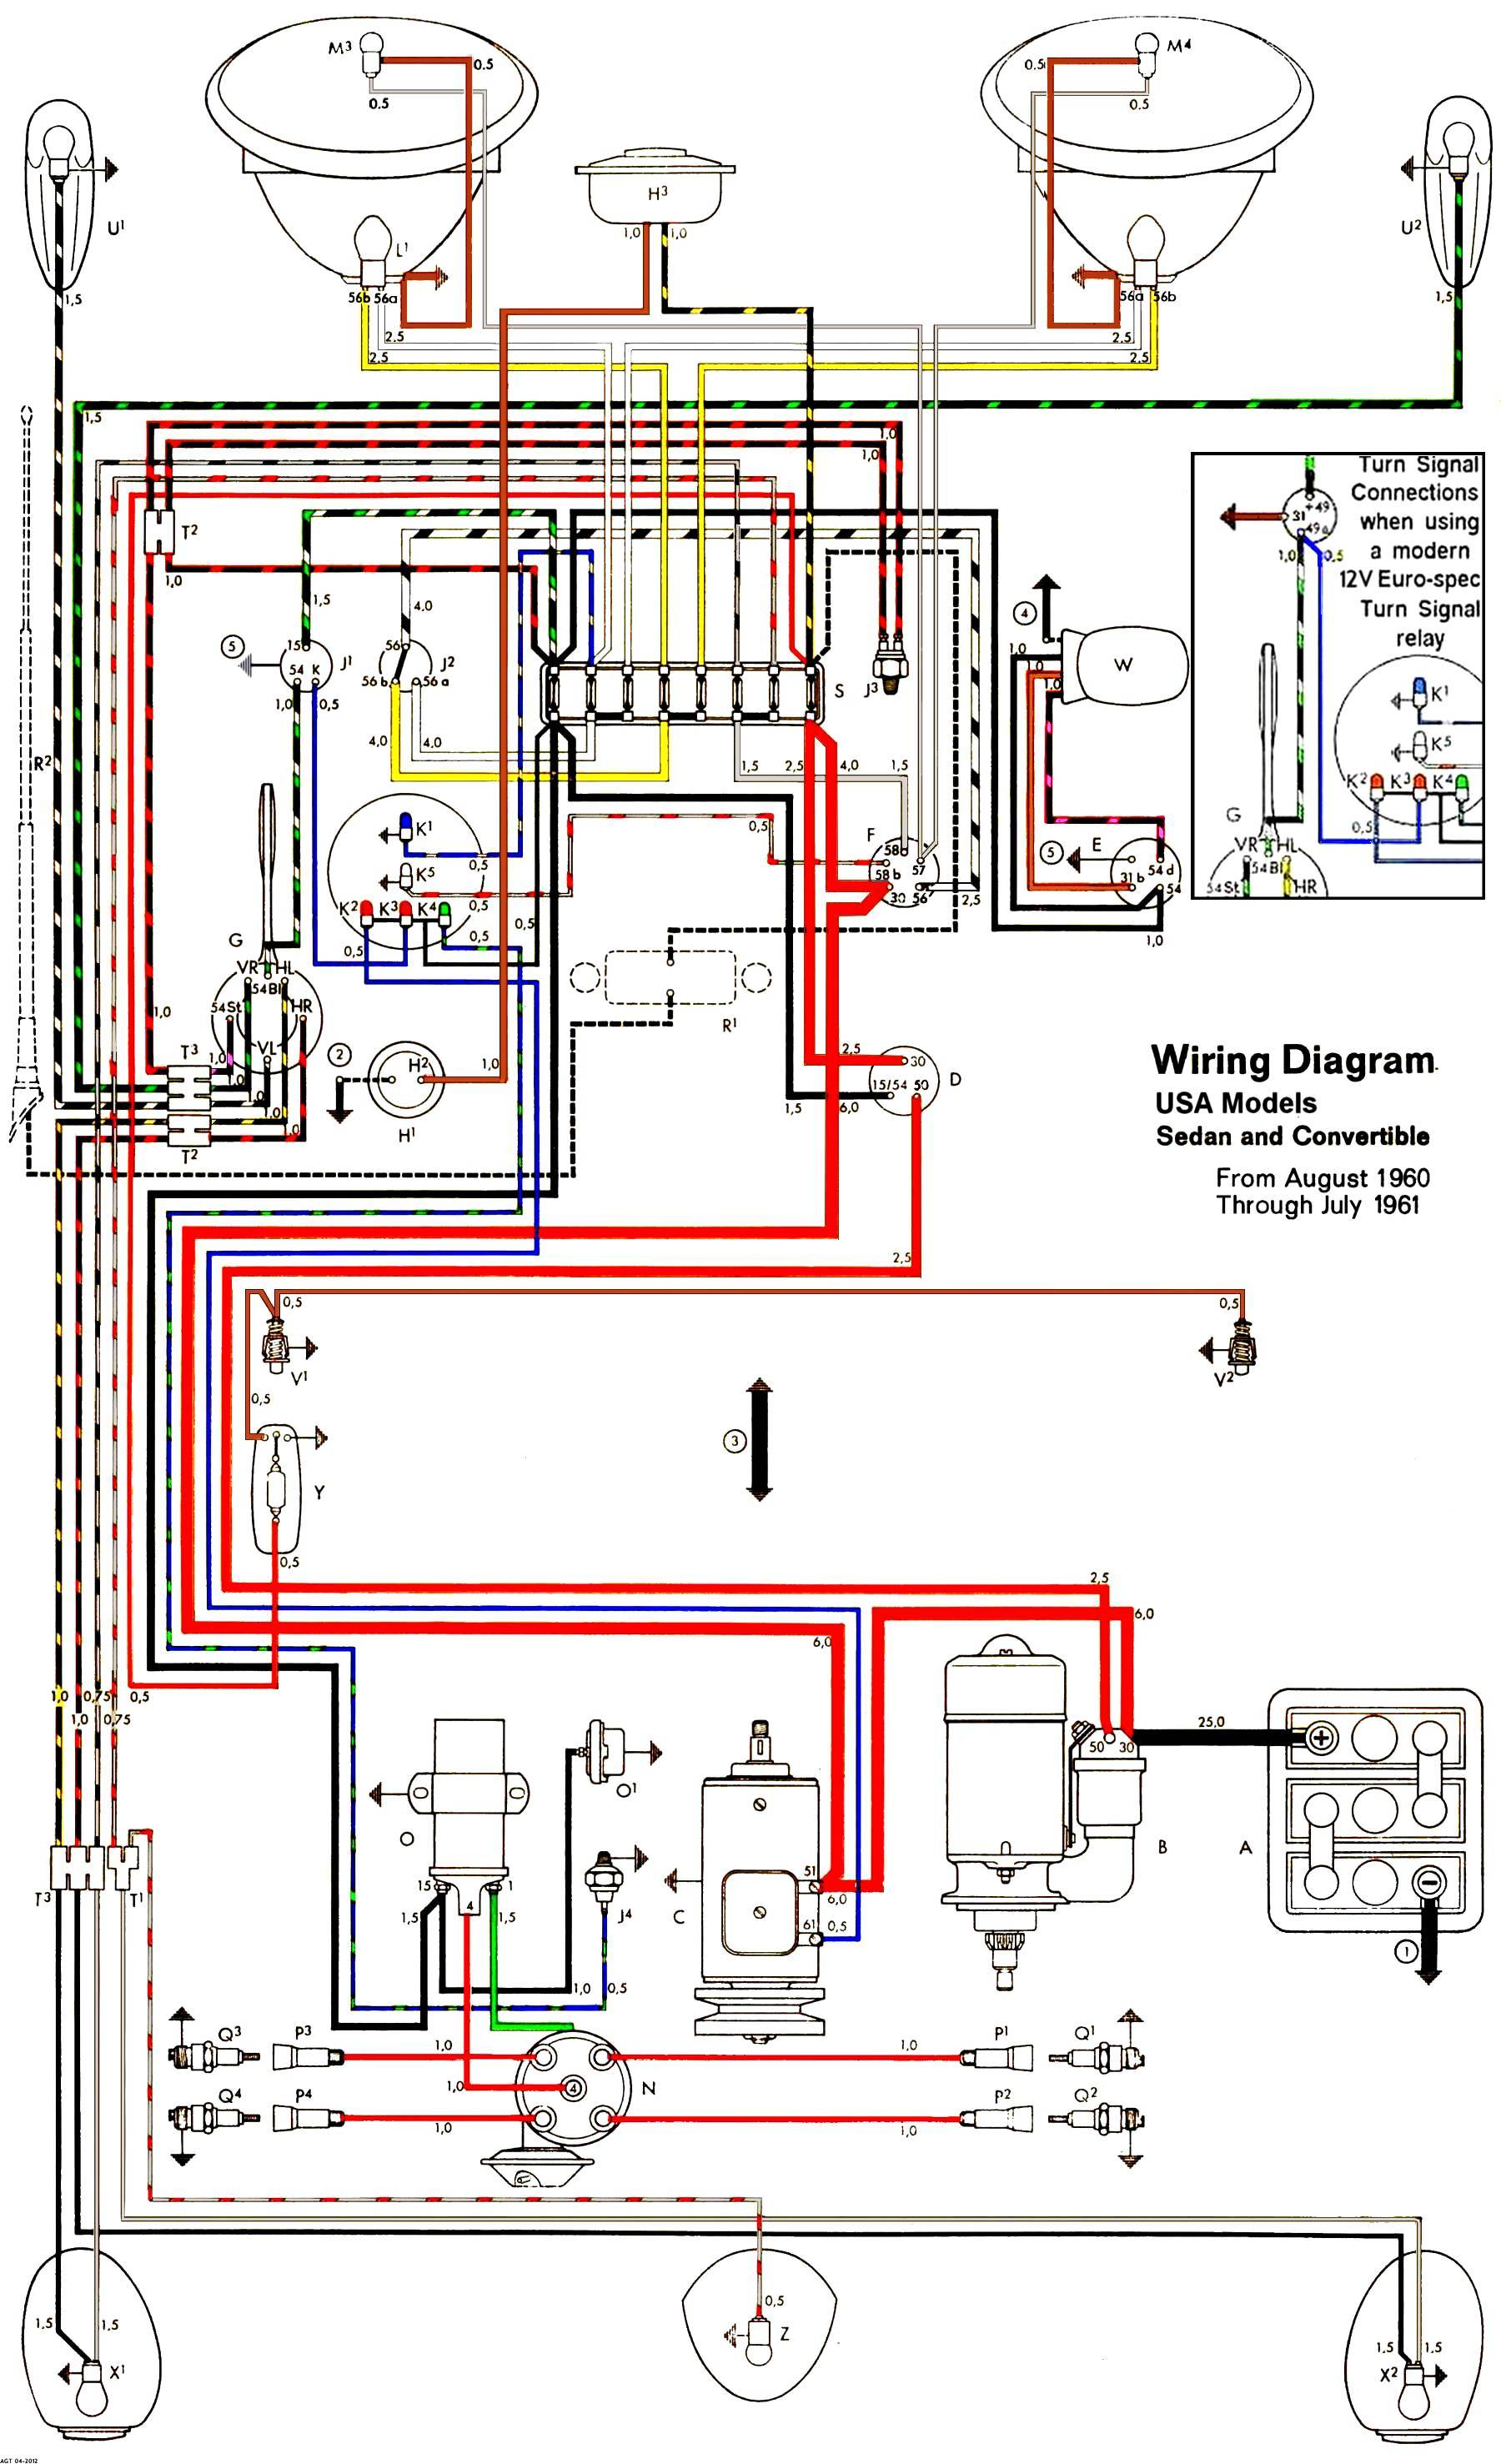 1961USA T1 vw bug turn signal wiring diagram vw beetle flasher relay wiring 66 vw bug wiring diagram at webbmarketing.co